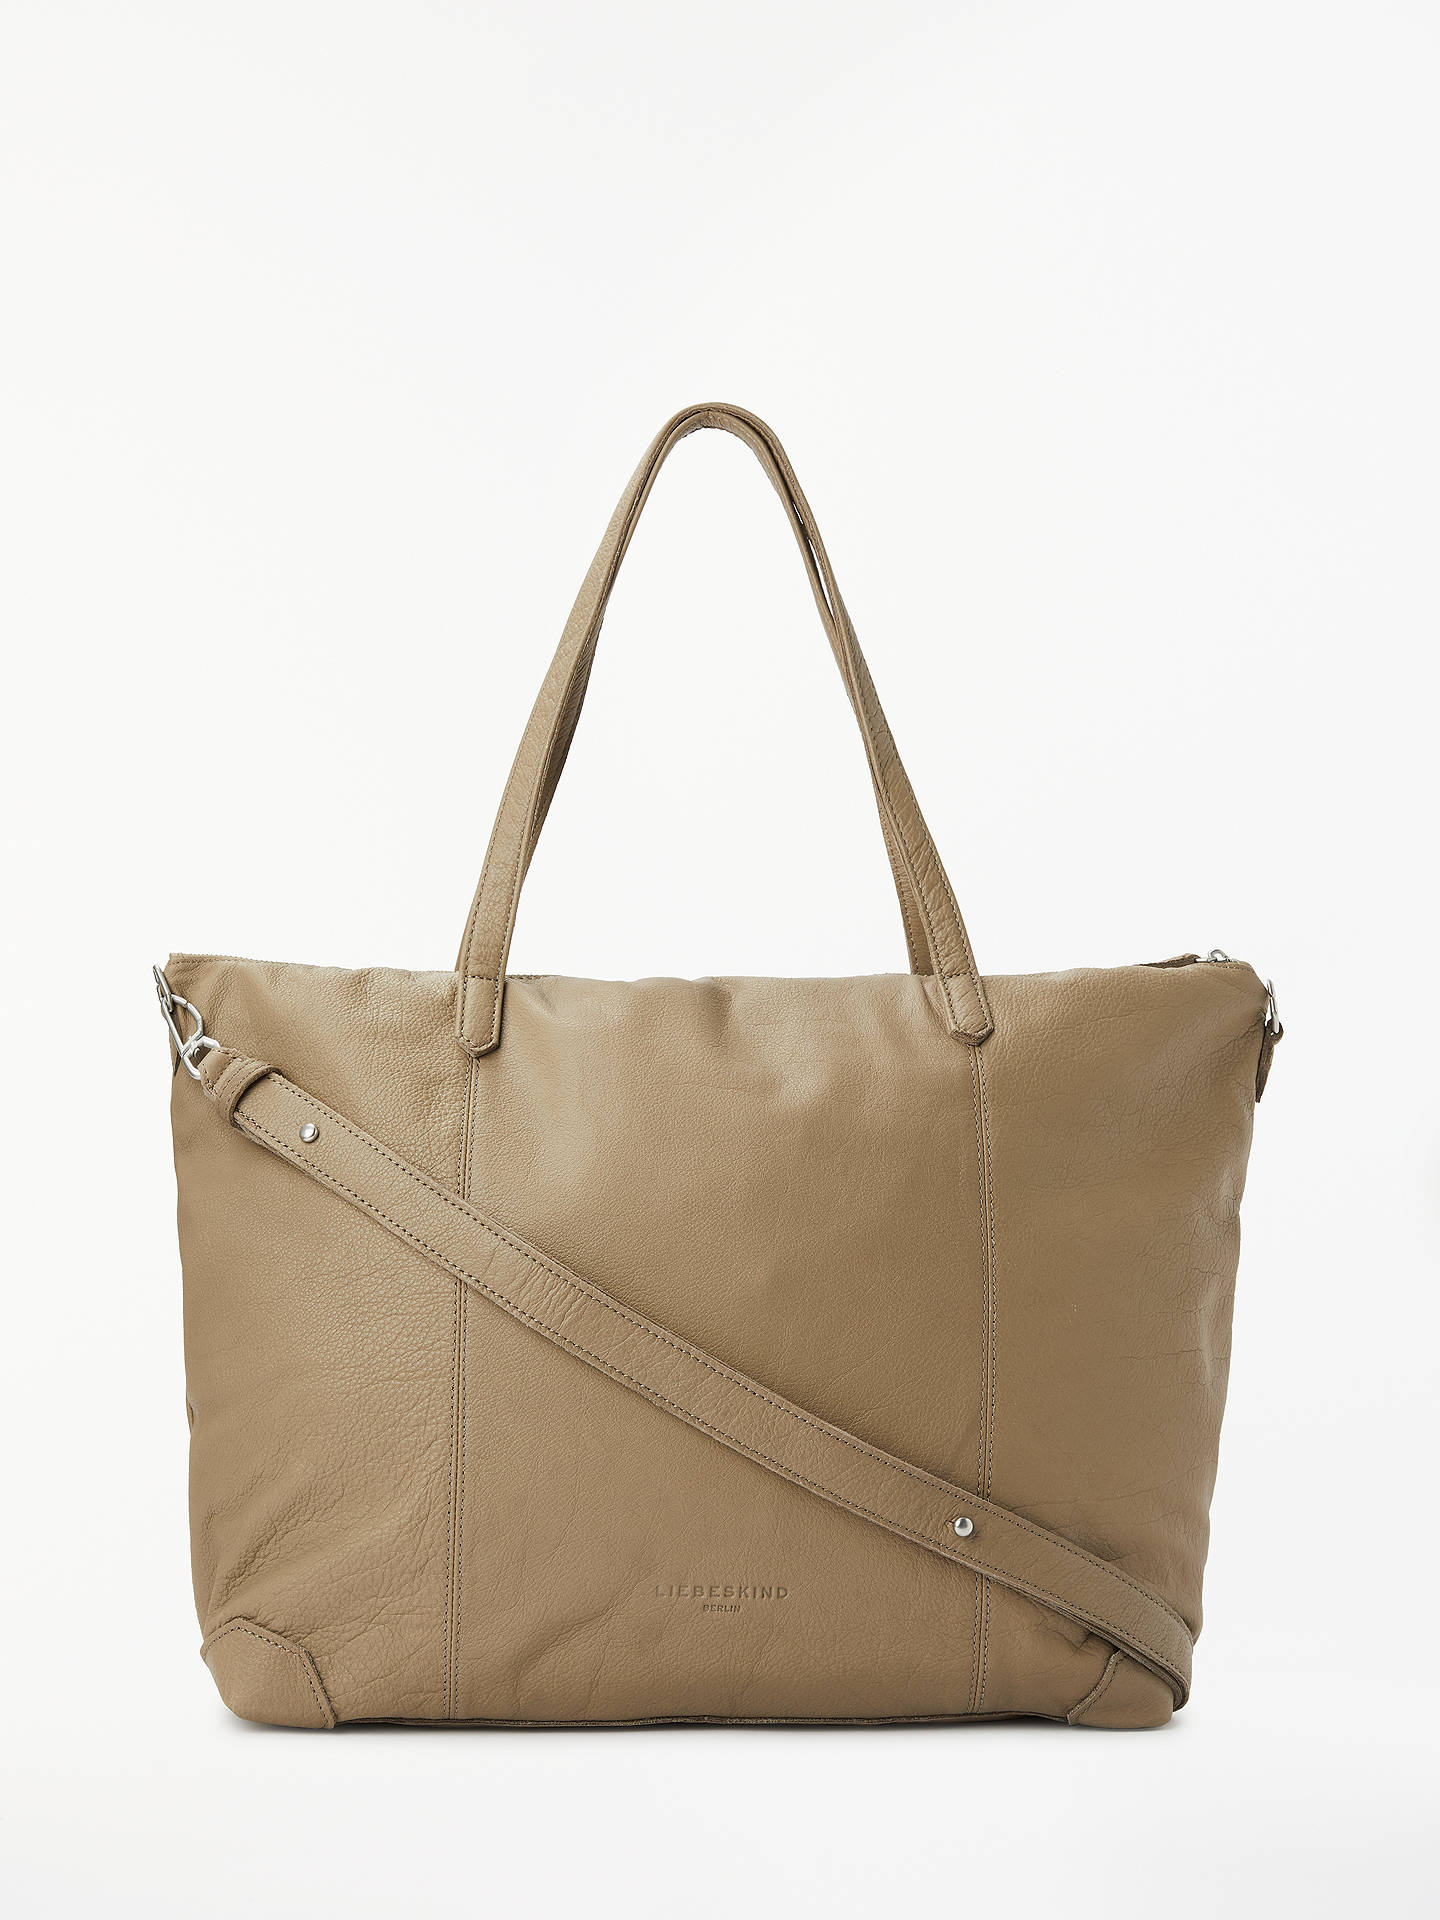 587c11ea0e Buy Liebeskind Berlin Kaethe Leather Zip Top Tote Bag, Stone Online at  johnlewis.com ...